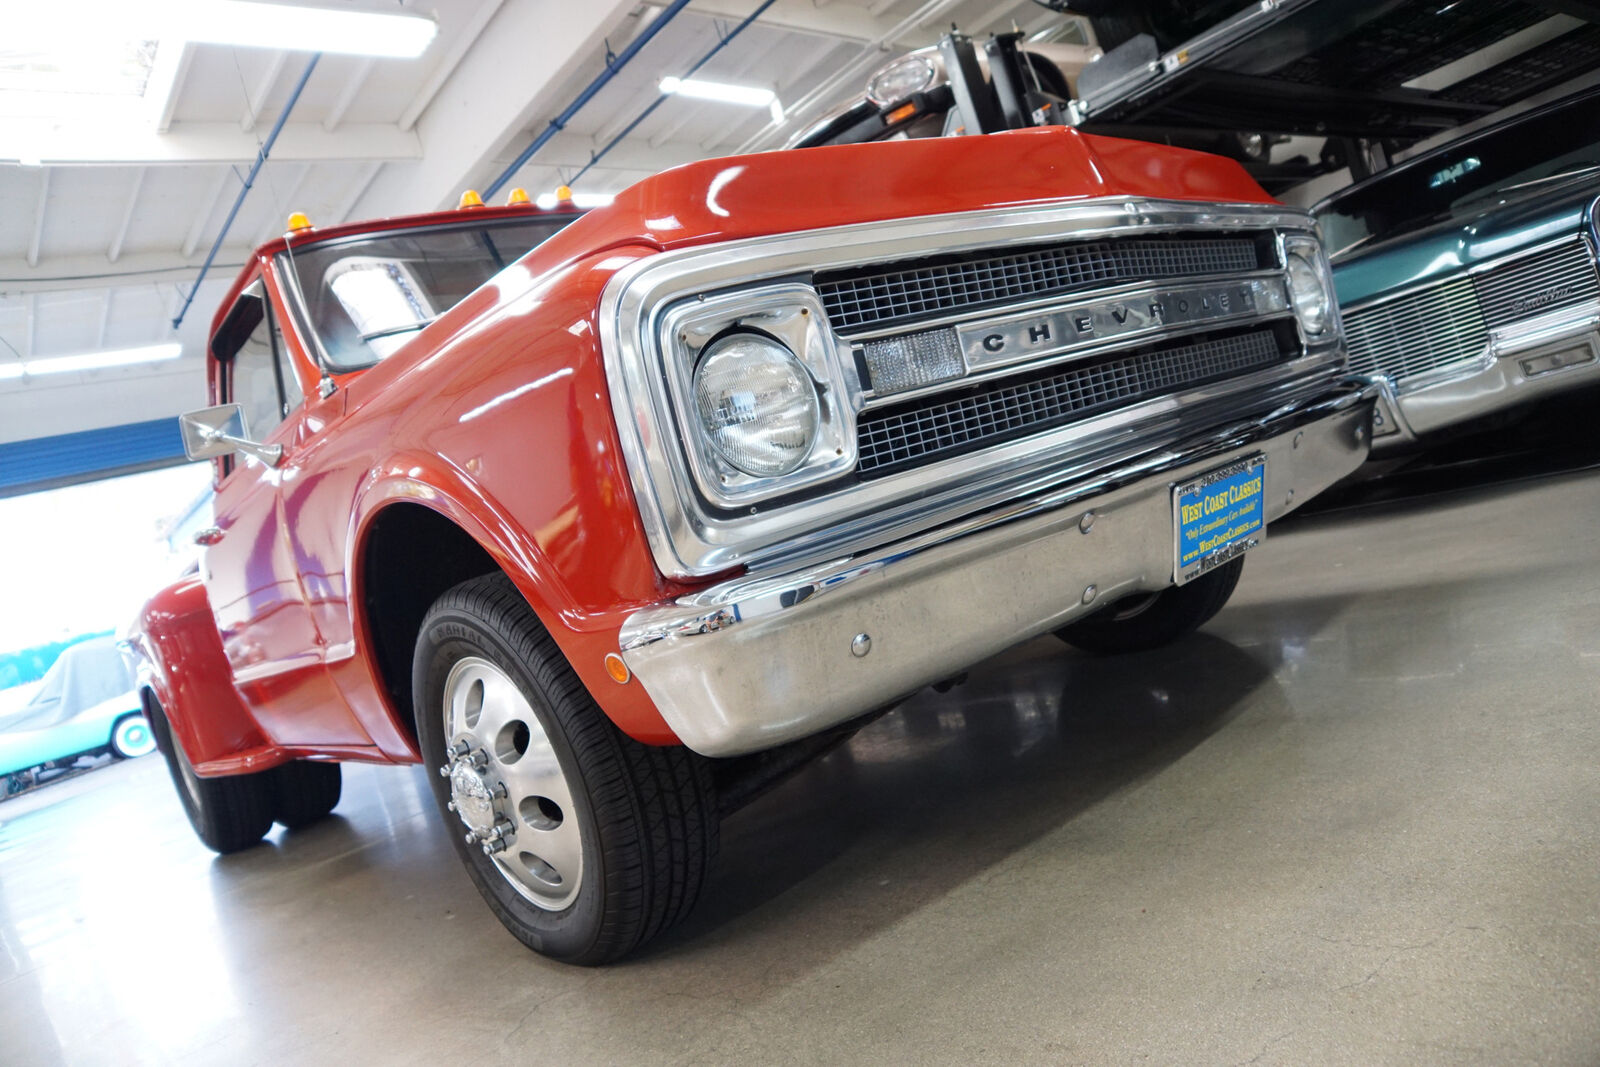 Short and Stout: This 1969 Chevy Truck Is A Short-Bed, Step-Side Dually With A Big Block!